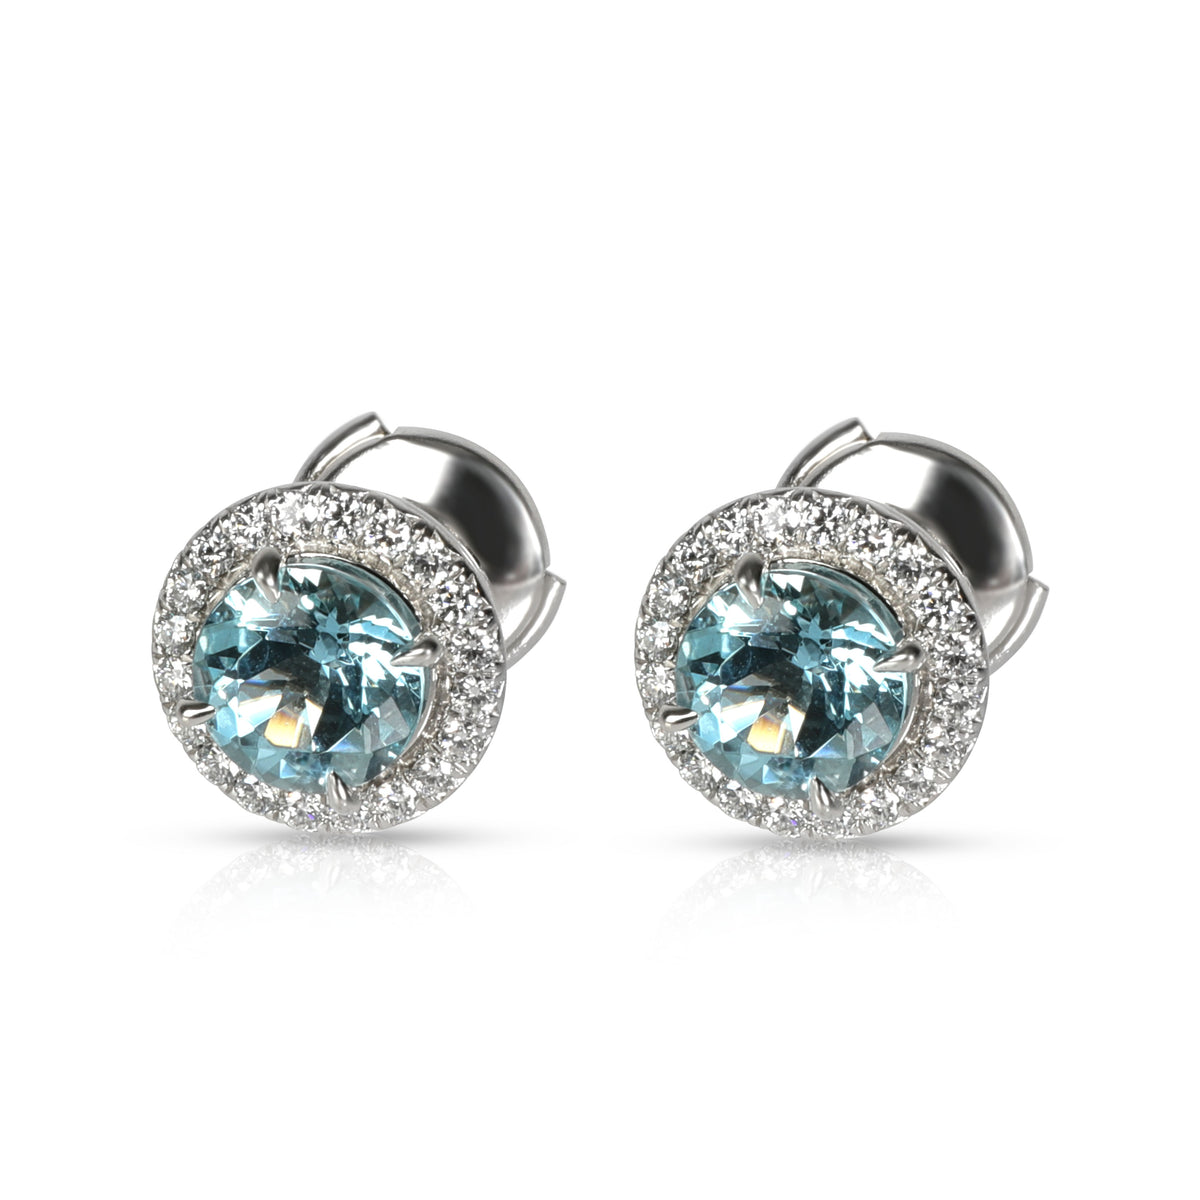 Tiffany & Co. Soleste Aquamarine Diamond Earrings in Platinum 0.20 CTW